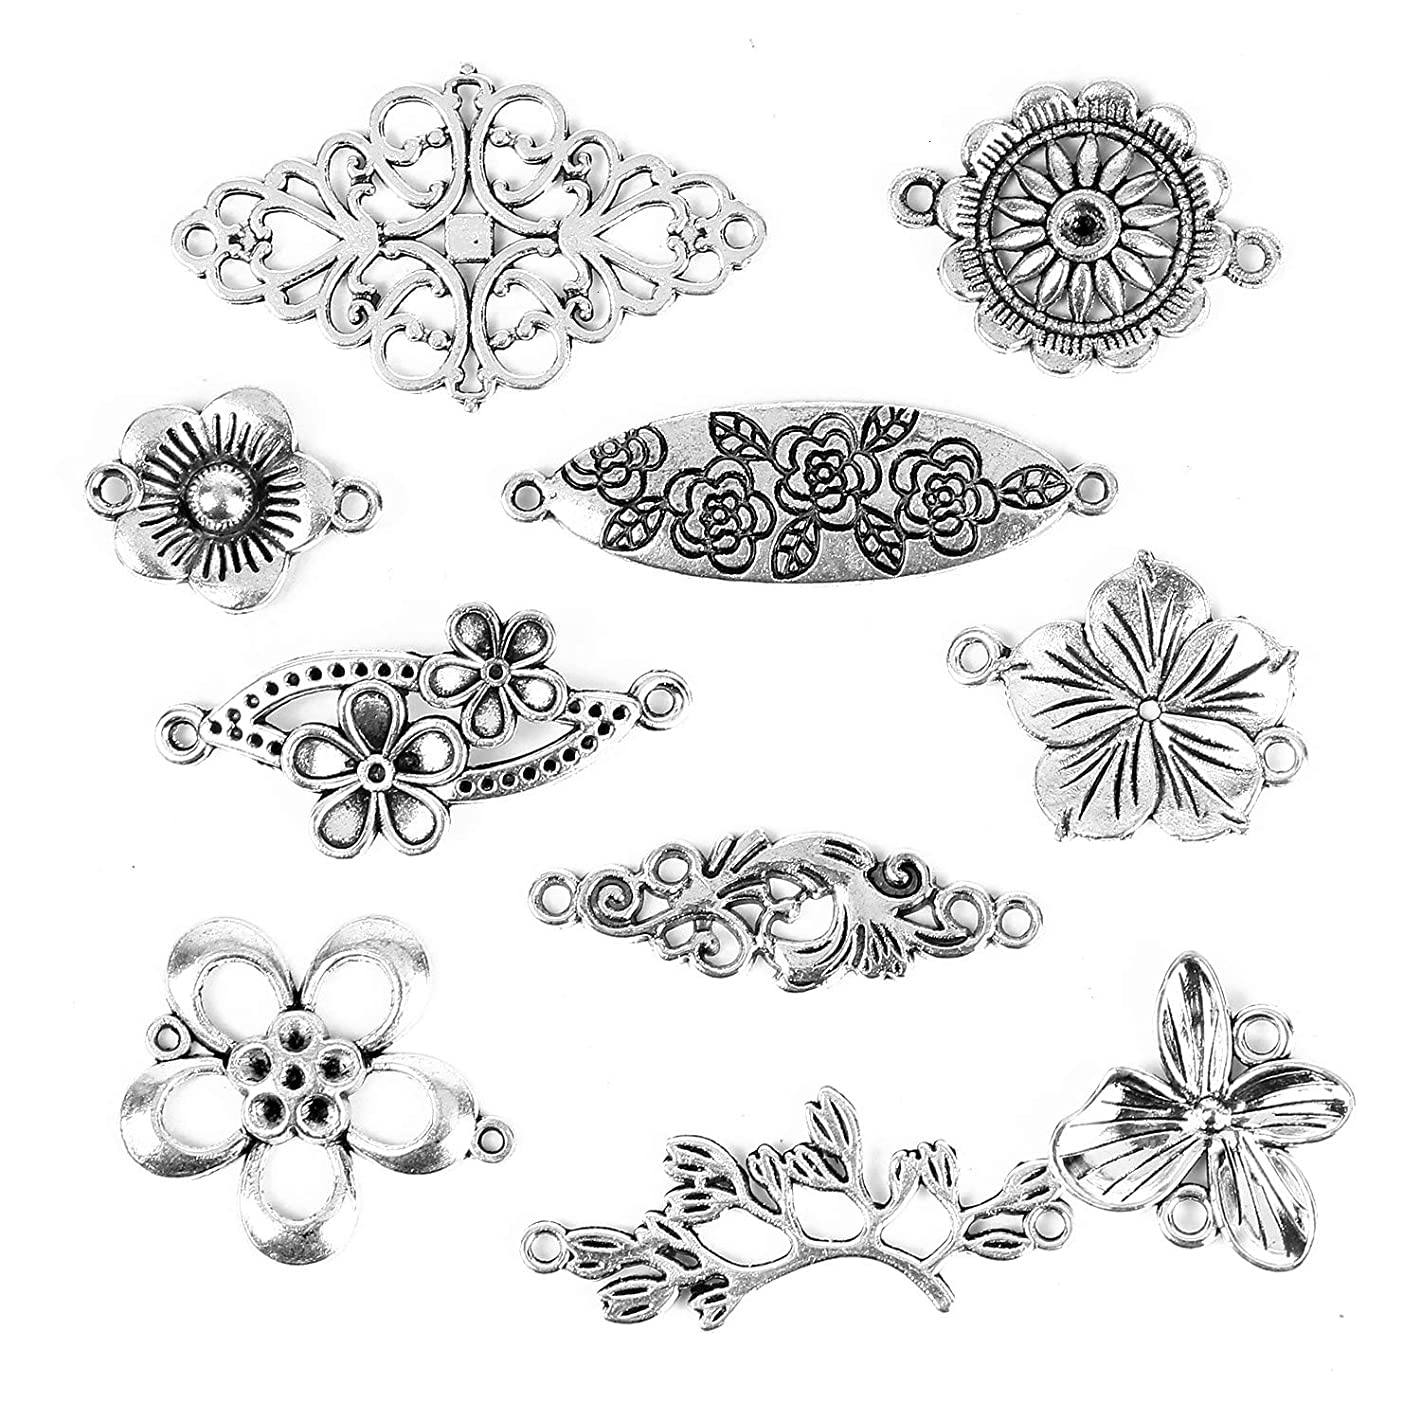 Monrocco 66 pcs Mixed Flower Connector Charms Pendants for Crafting